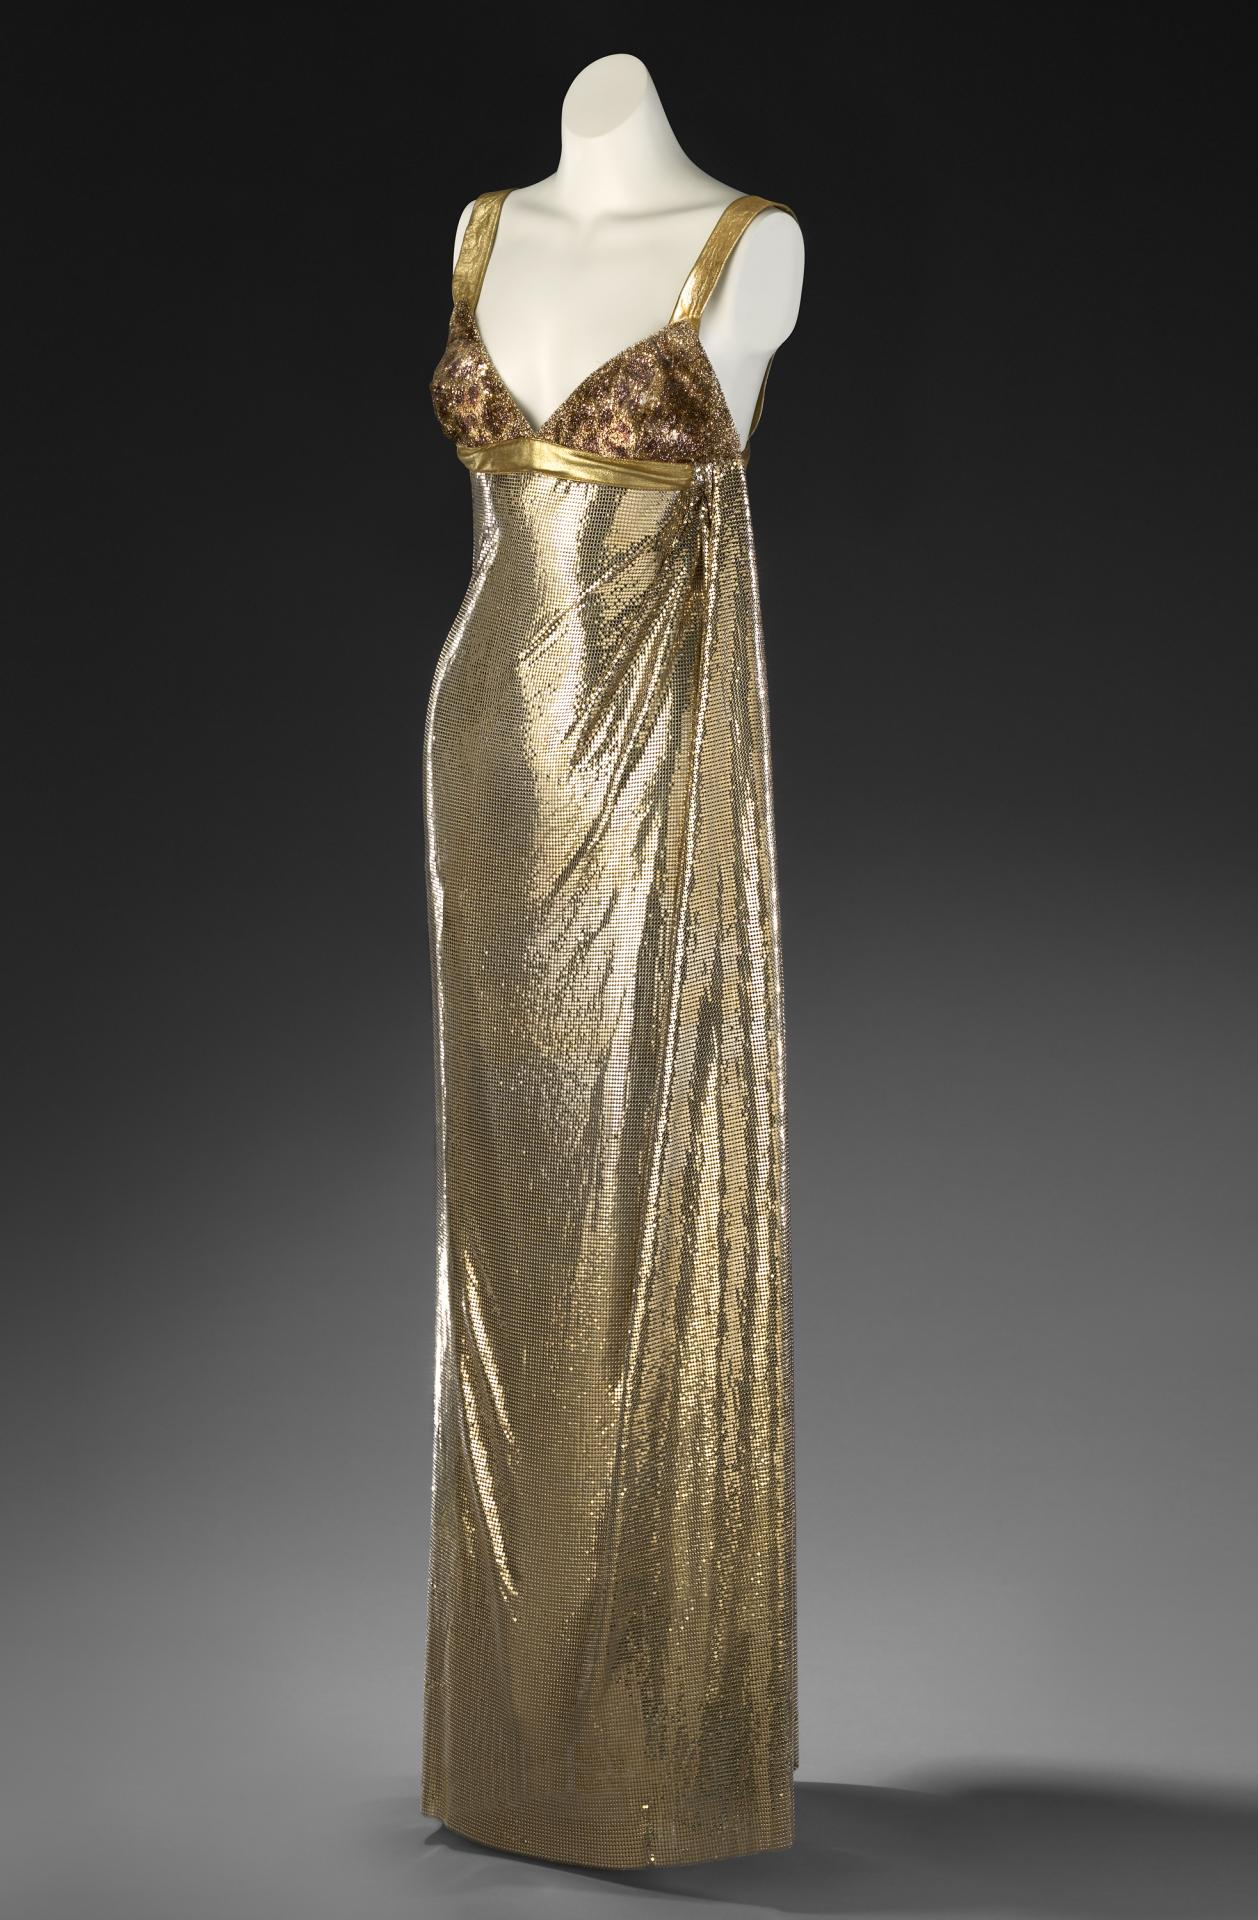 Evening dress | GIANNI VERSACE, Milan (fashion house); Gianni ...